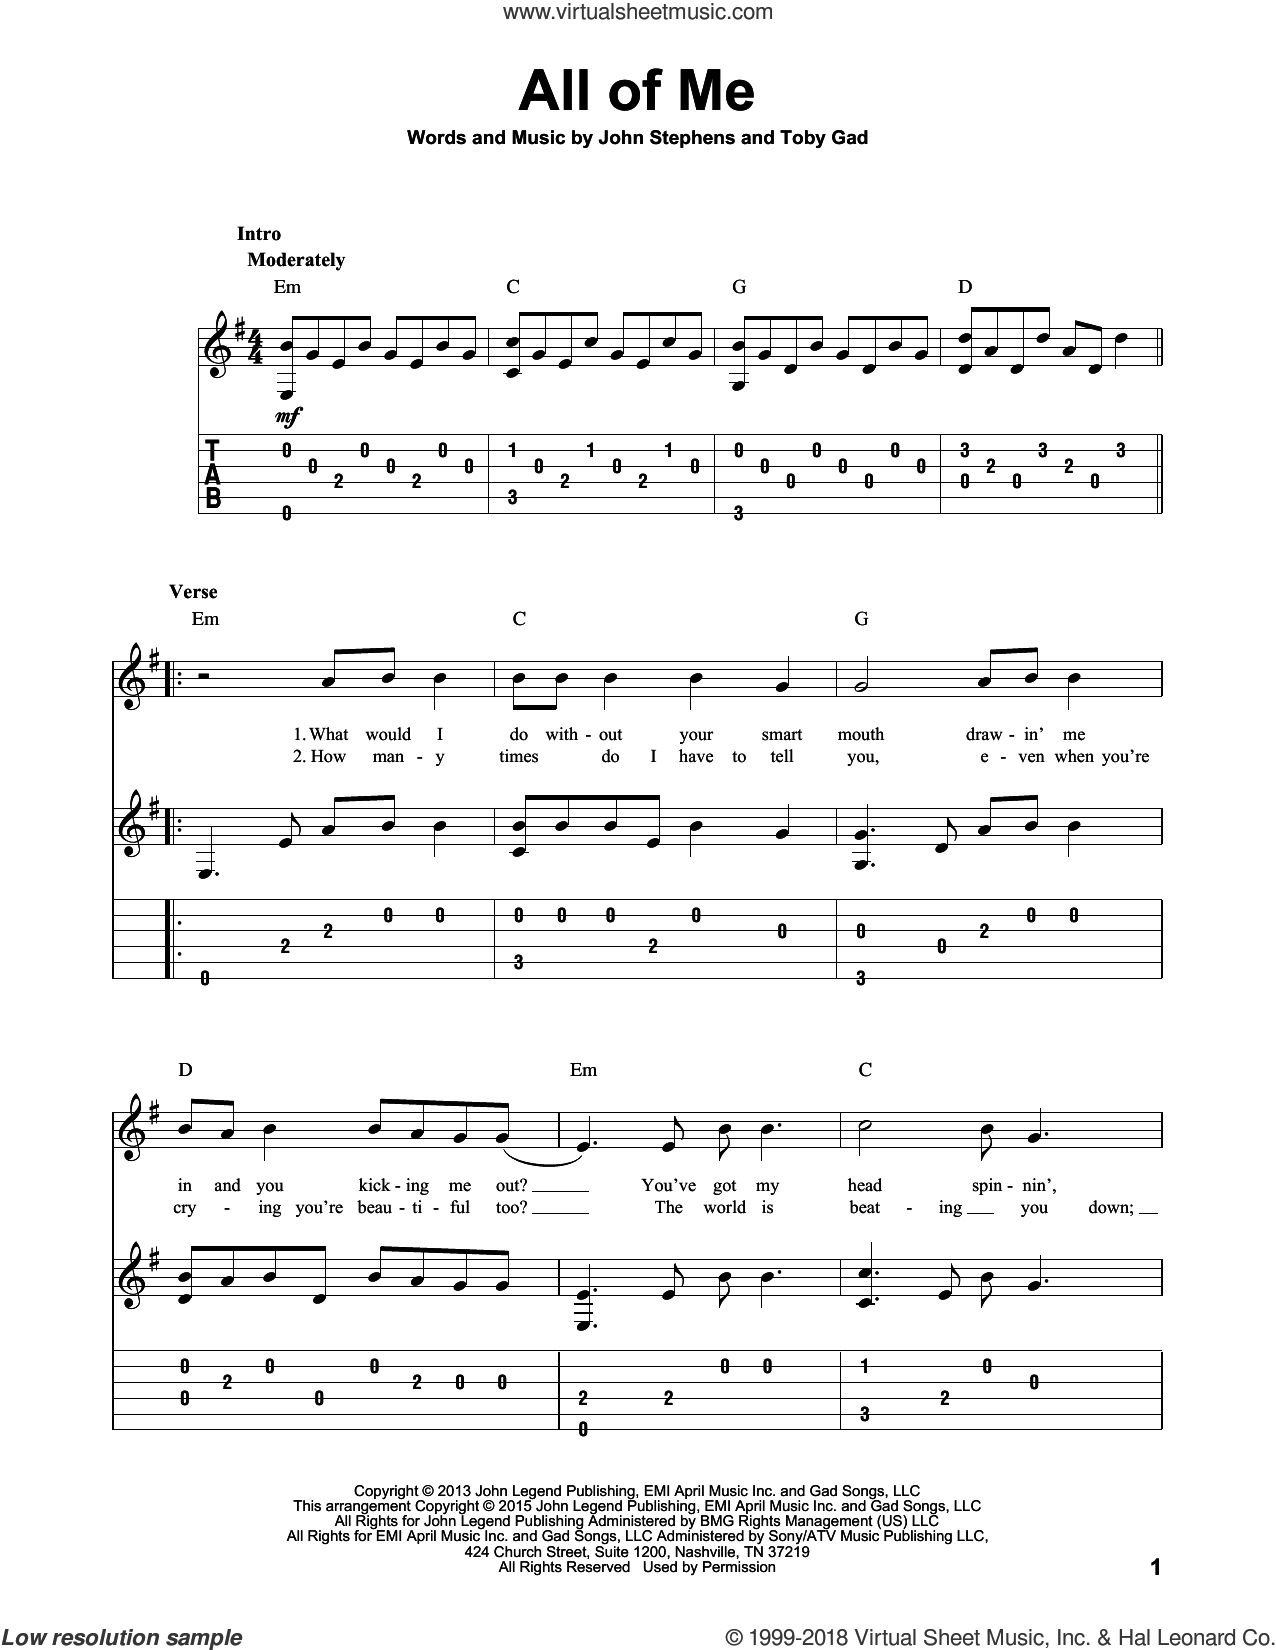 All Of Me sheet music for guitar solo by John Legend, John Stephens and Toby Gad, wedding score, intermediate skill level